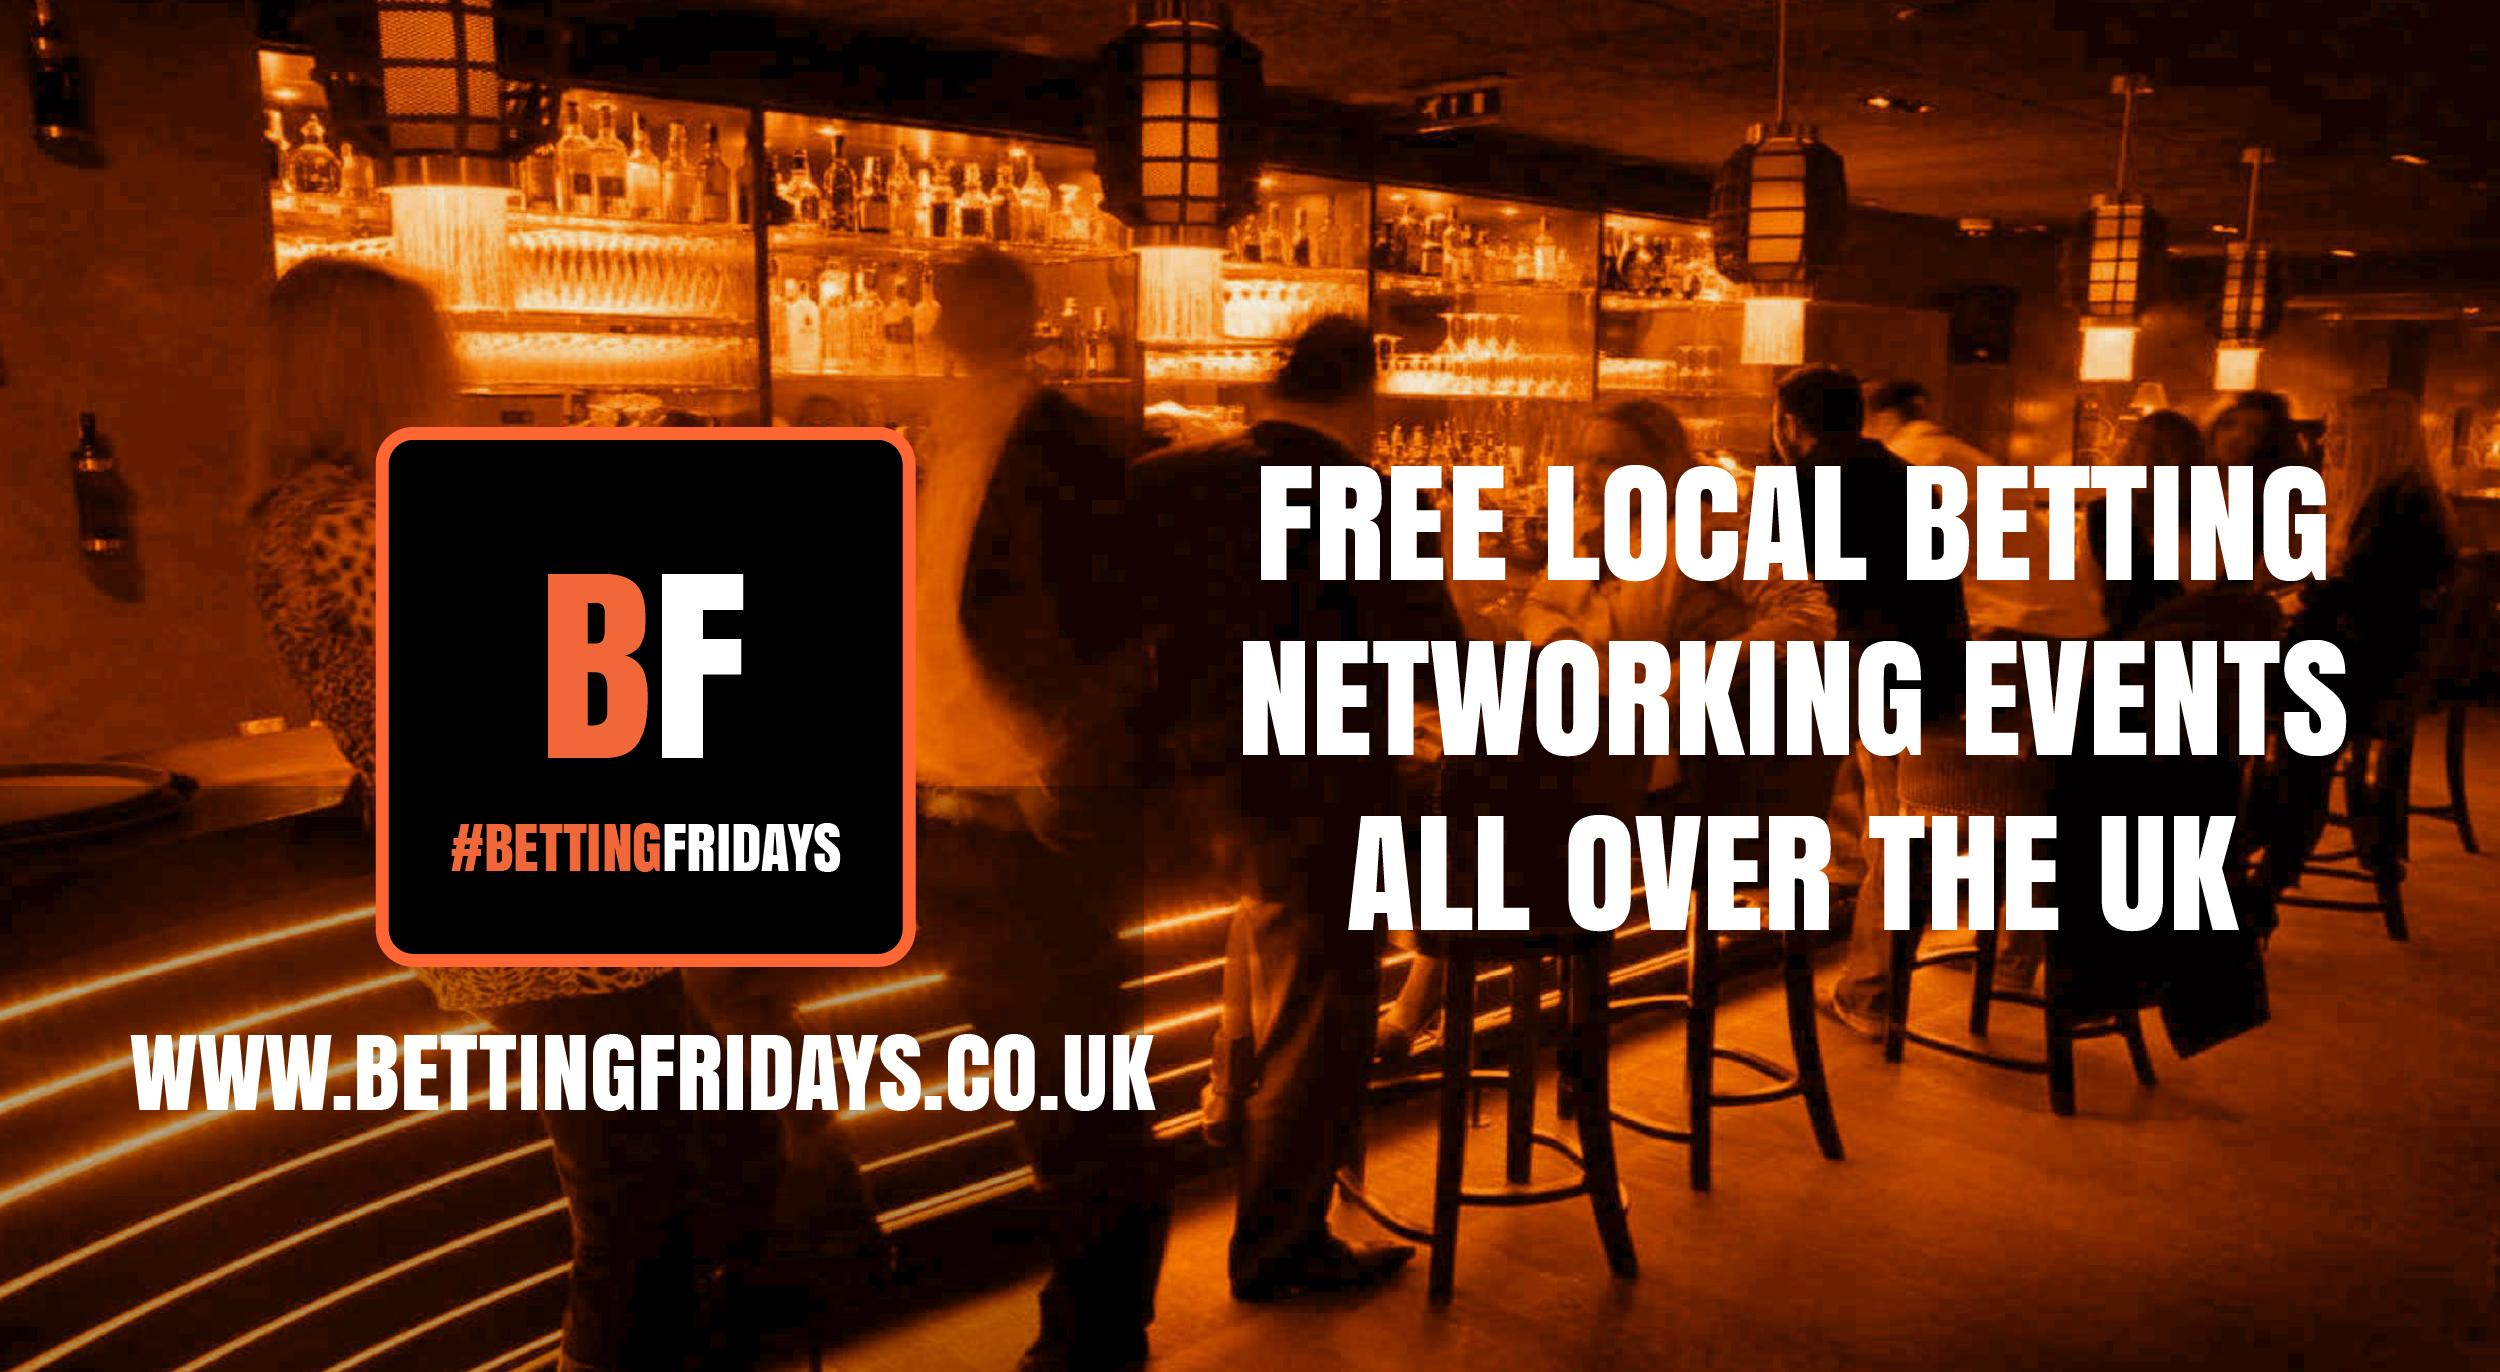 Betting Fridays! Free betting networking event in Ilkley